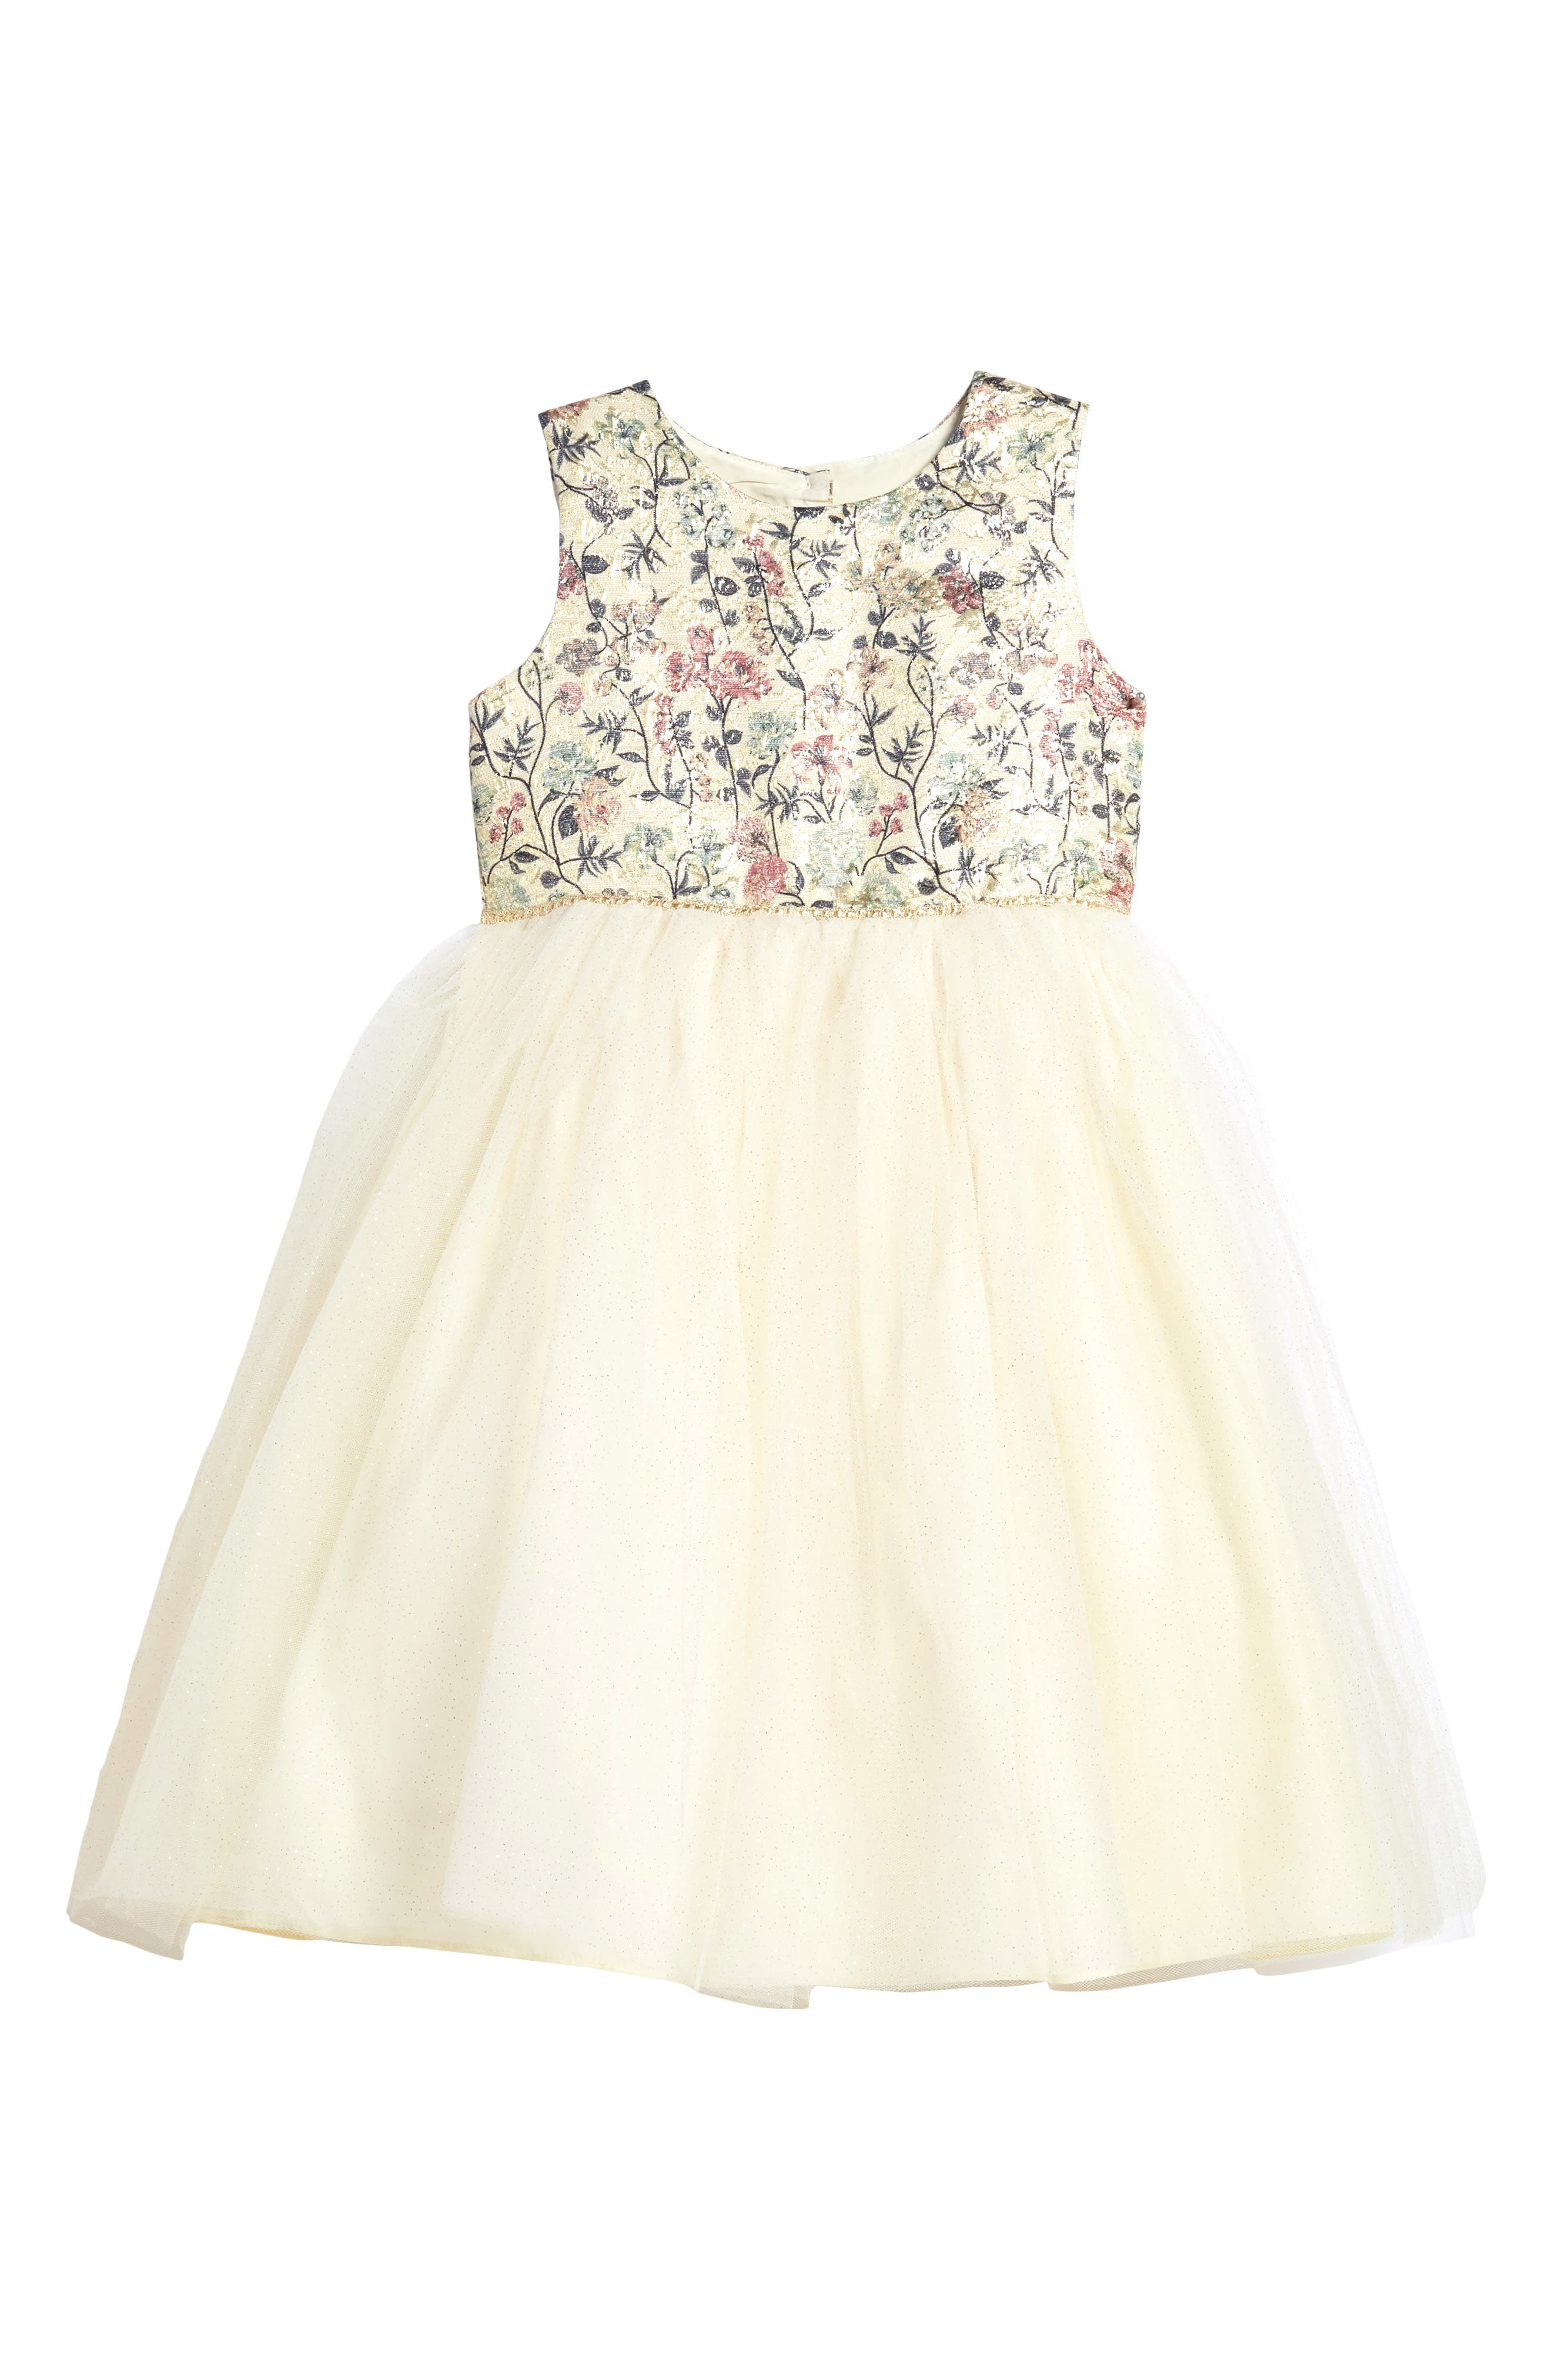 Floral Brocade & Tulle Dress,                             Main thumbnail 1, color,                             710